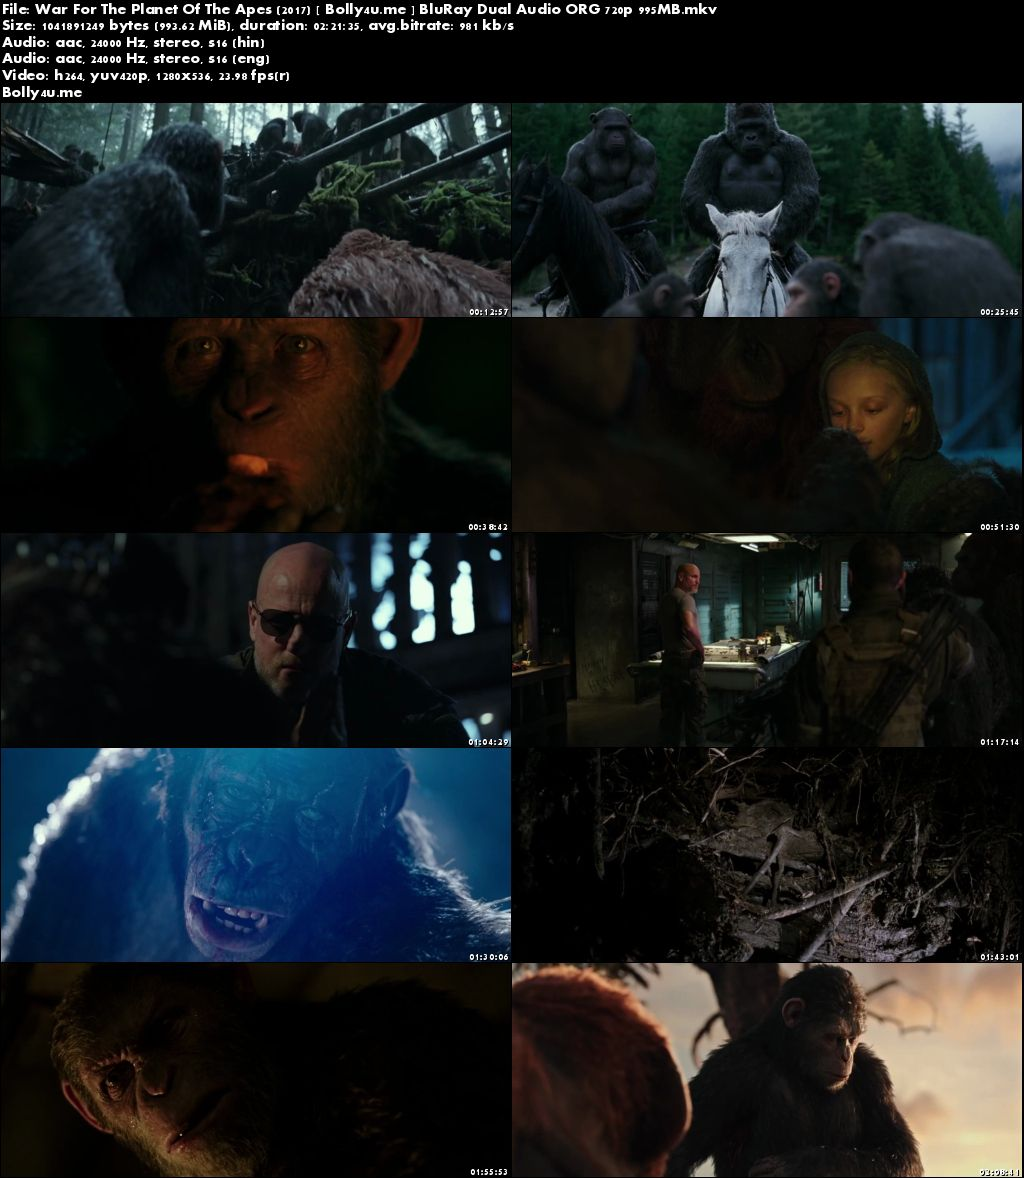 Download War for the Planet of the Apes - Part 3(2017) Full Movie in [Hindi-English] 720p BluRay